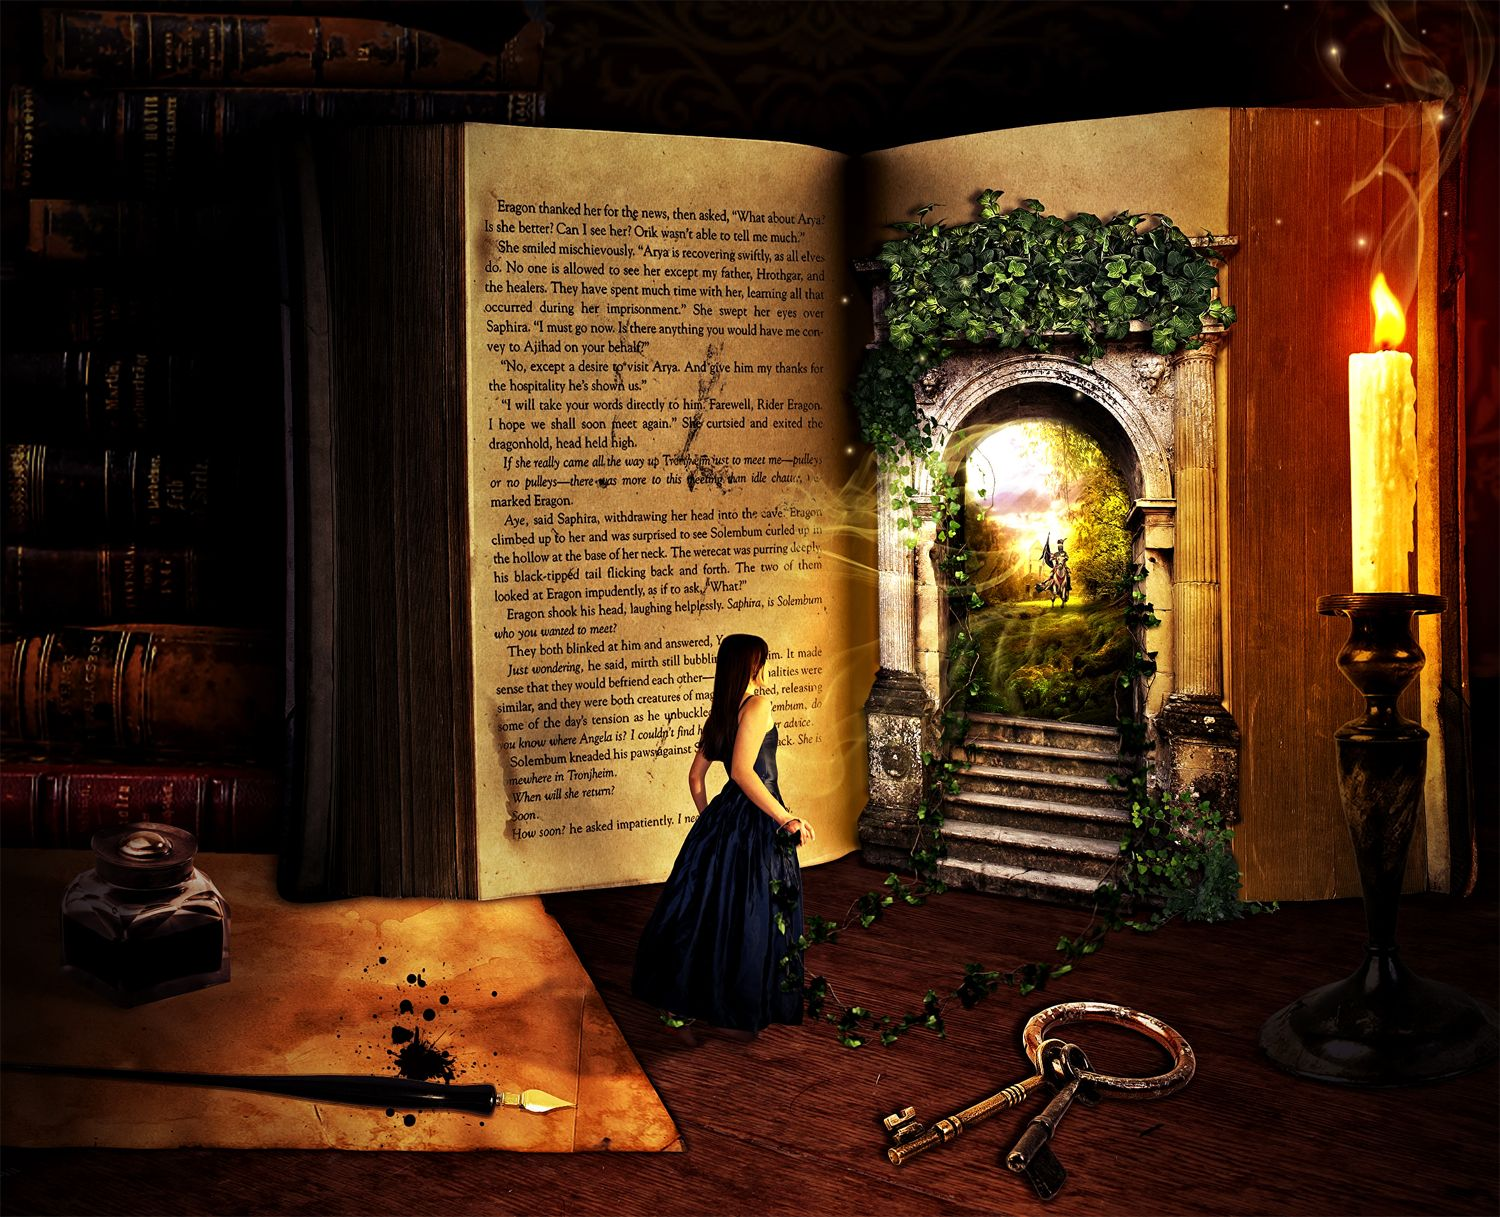 Fantasia Libros The Lure Of A Book By Fictionchick On Deviantart Love